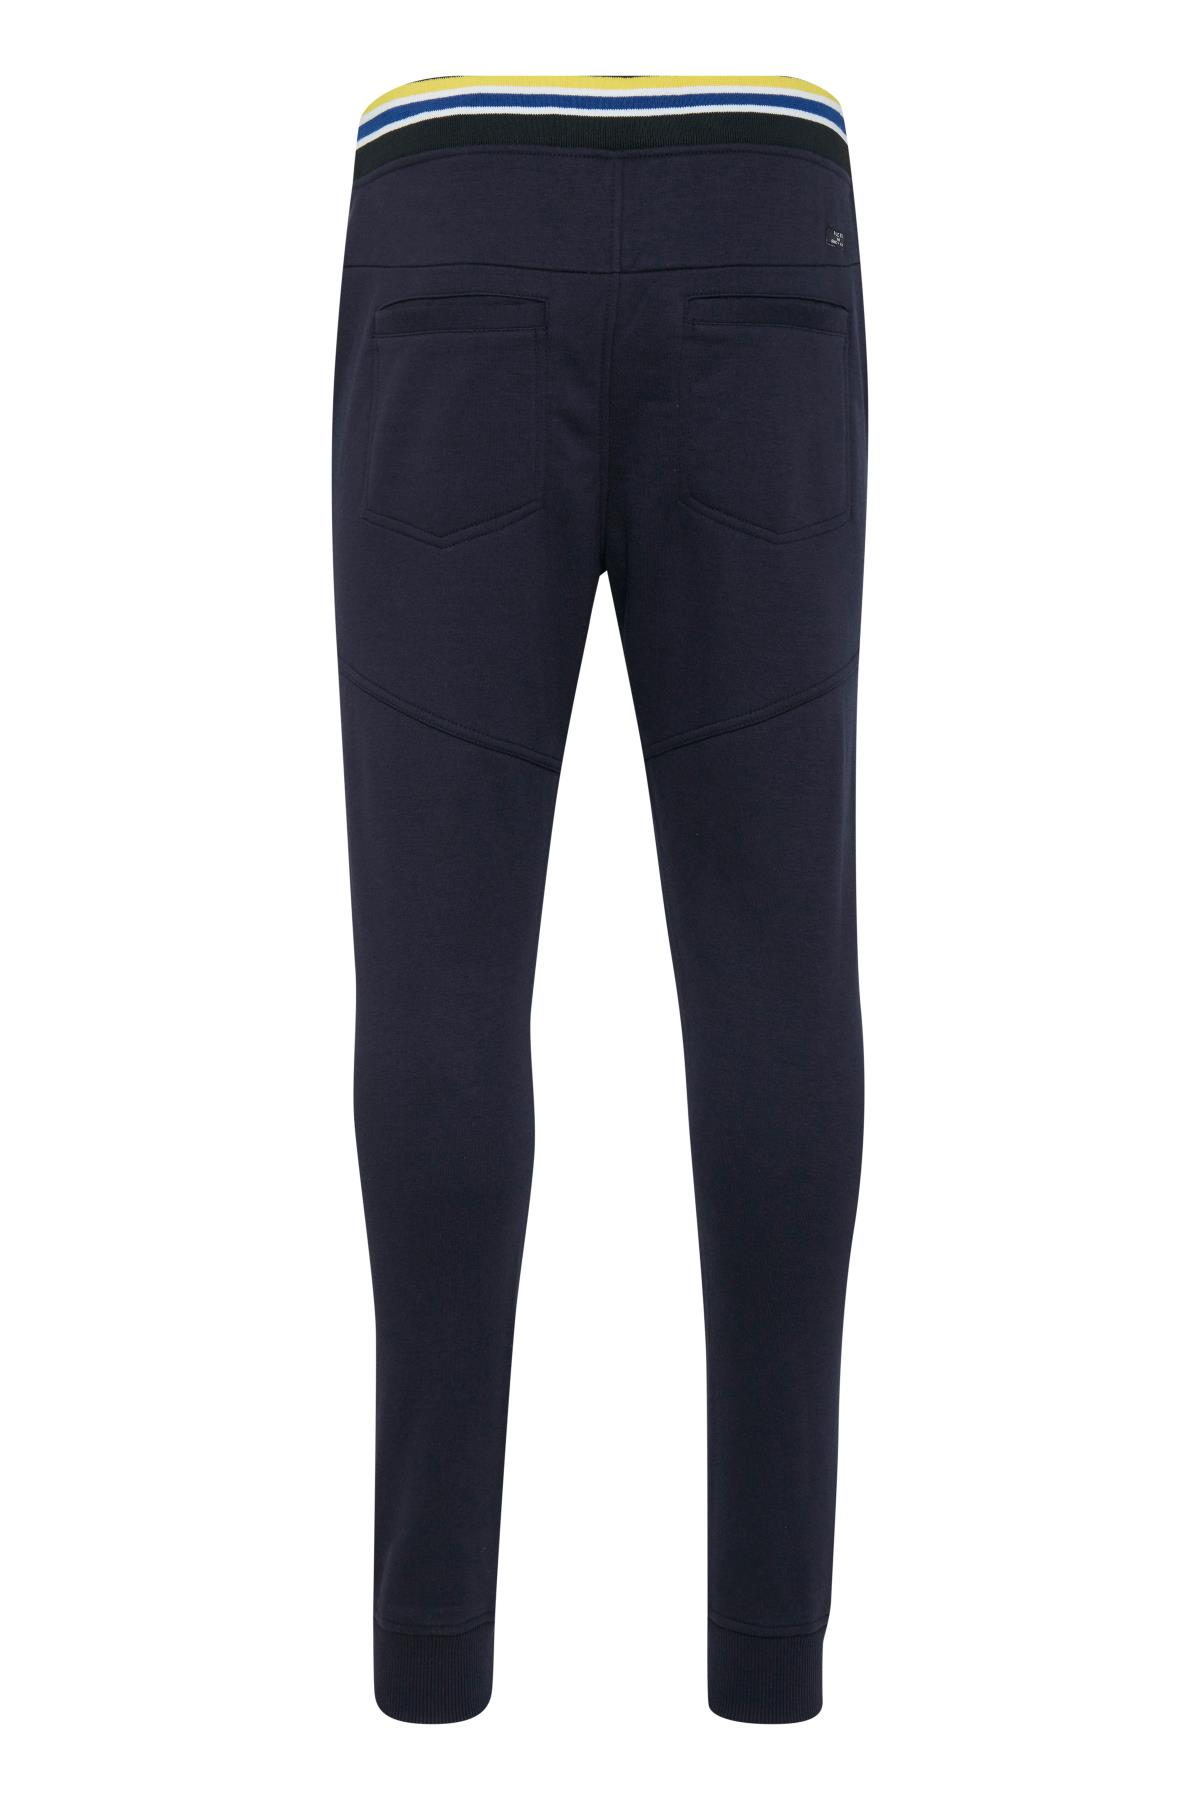 Mørk marineblå Pants Casual – Køb Mørk marineblå Pants Casual fra str. S-XL her